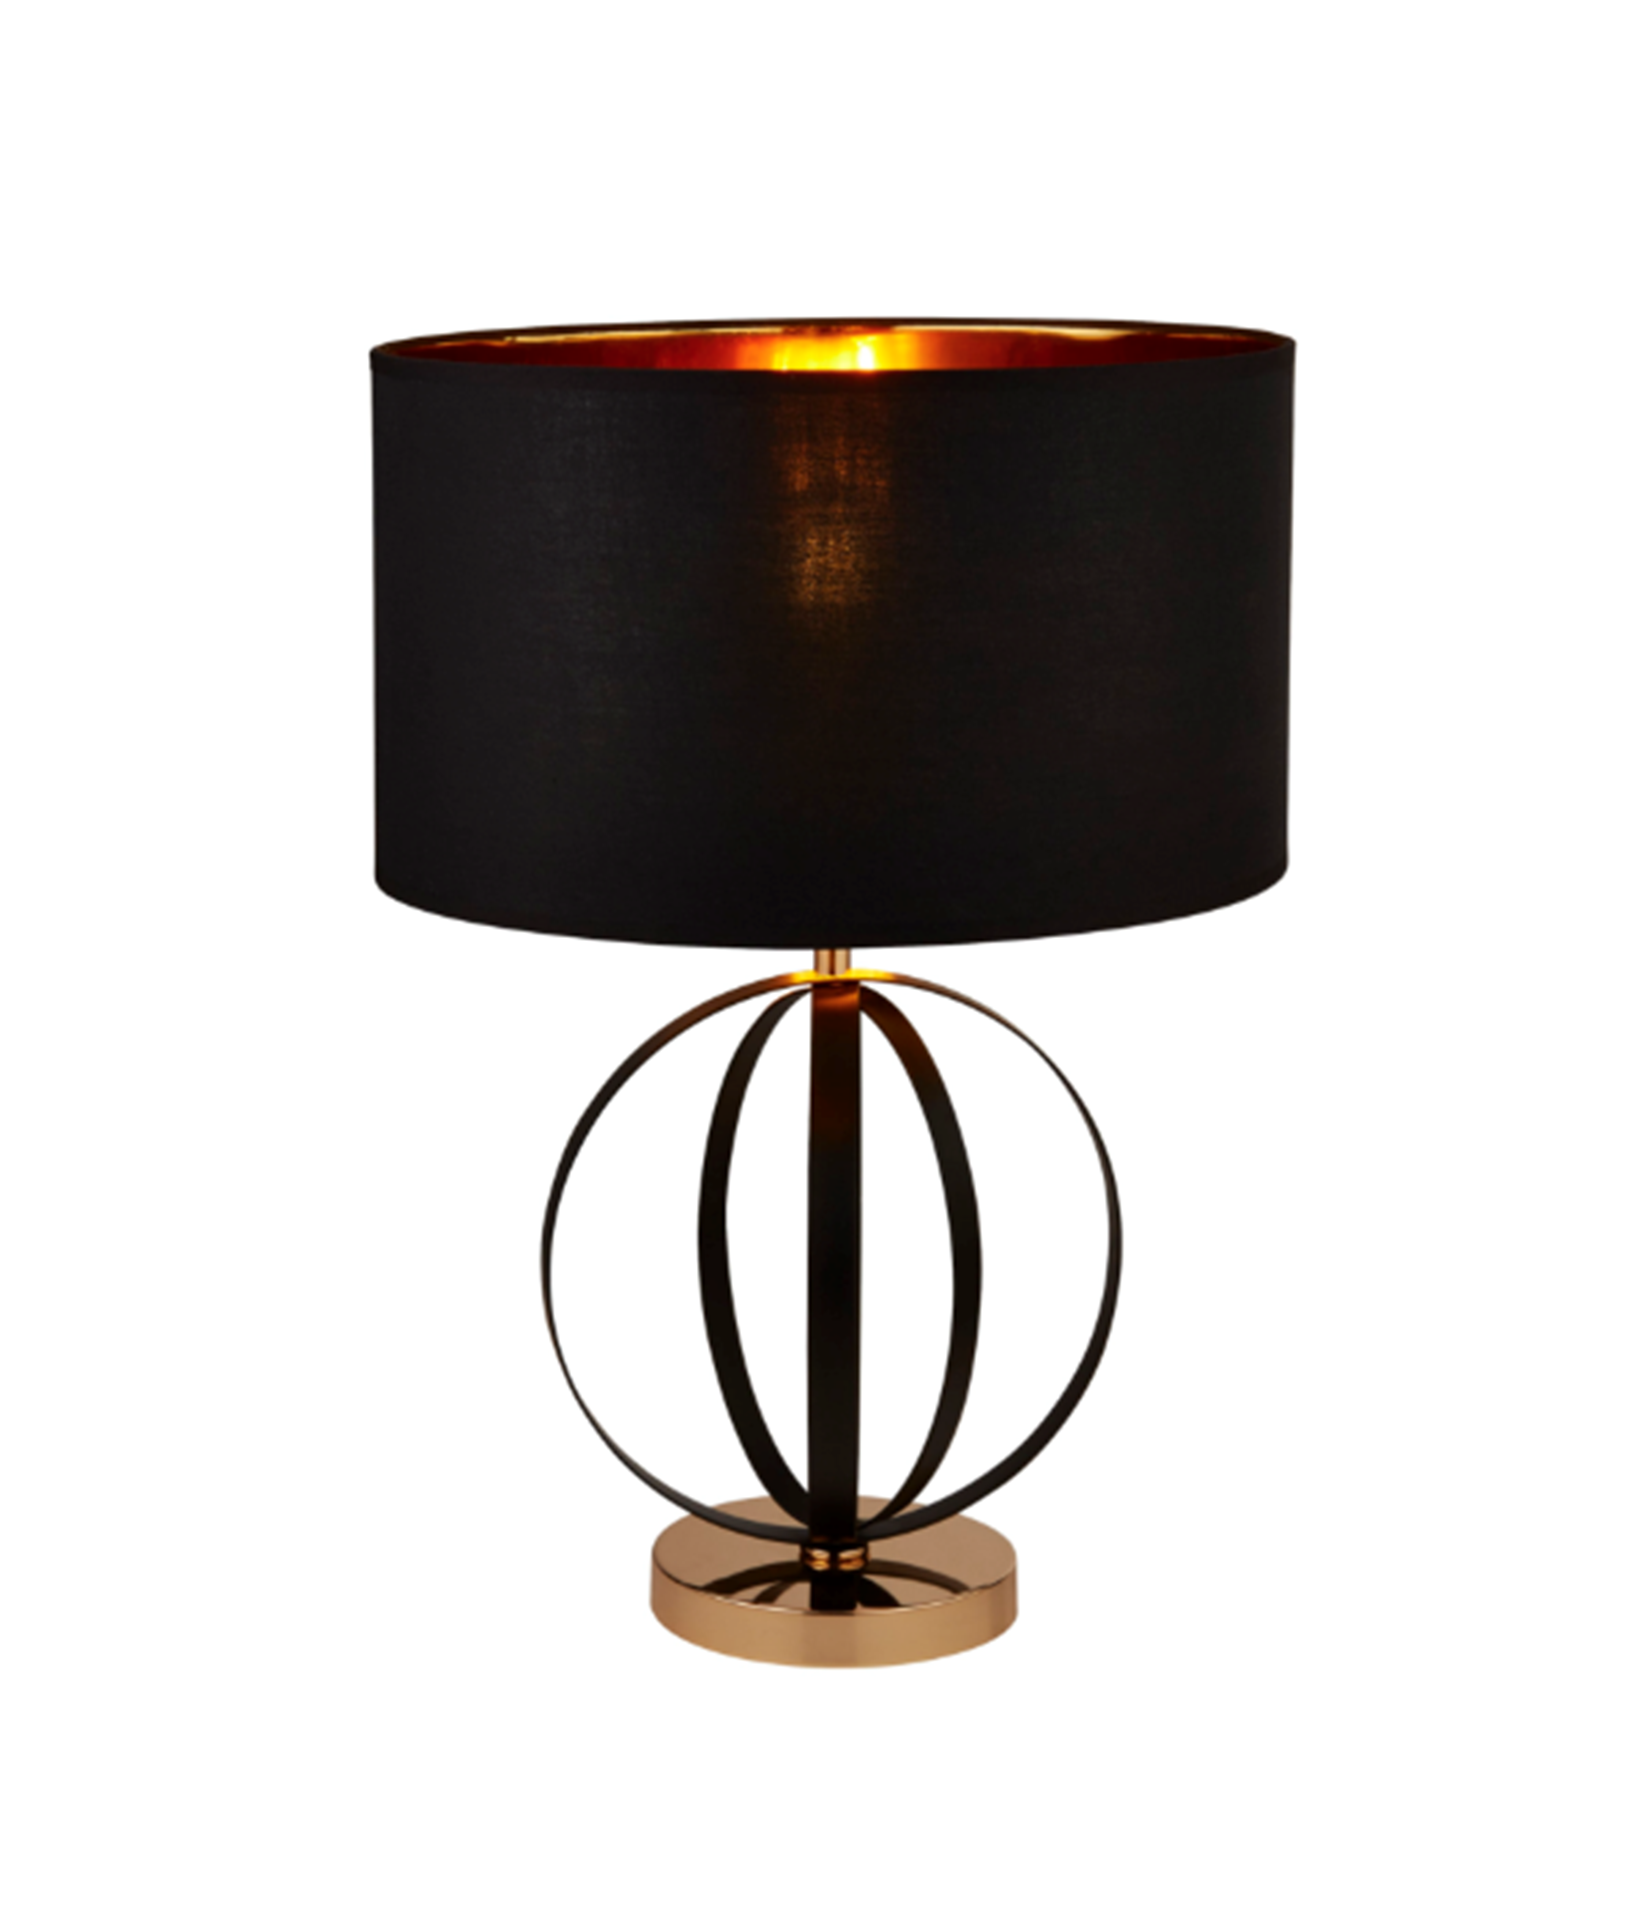 SEARCHLIGHT BLACK AND GOLD TABLE LAMP WITH BLACK SHADE, GOLD INNER 8072BGO